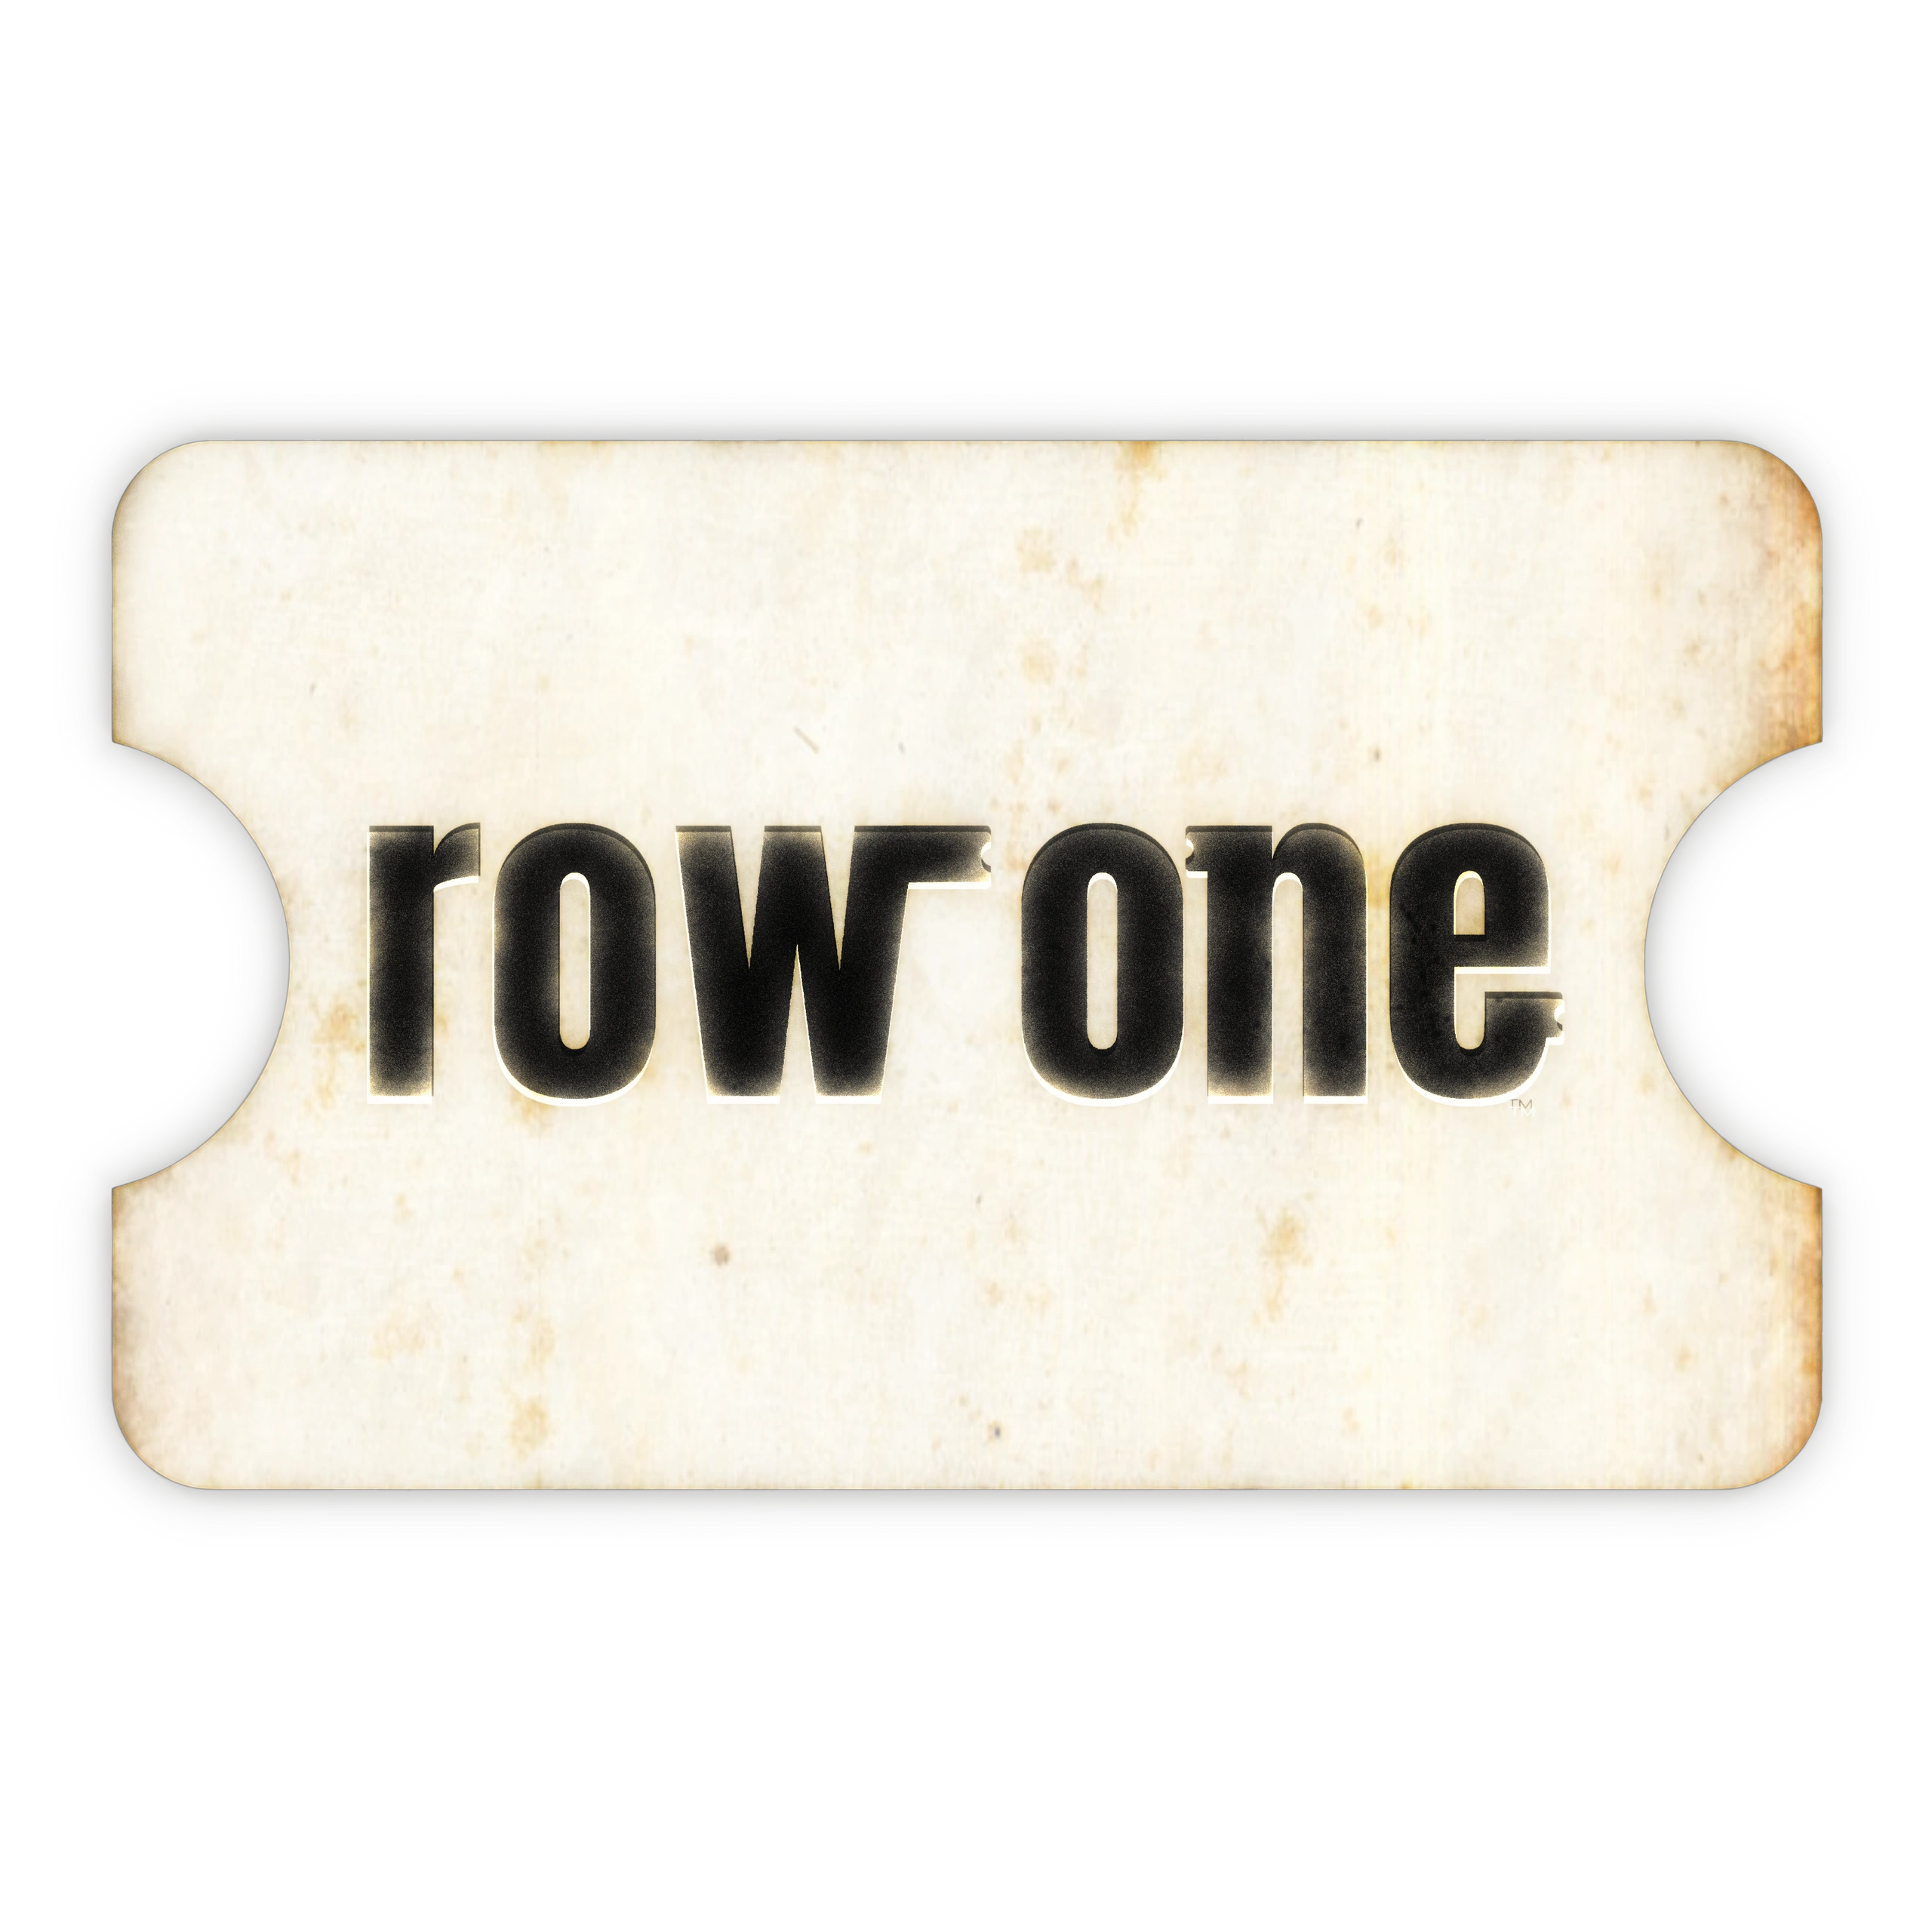 Row One Brand ticket logo. Row One sells vintage ticket stub canvas art. Row One sports art pops.